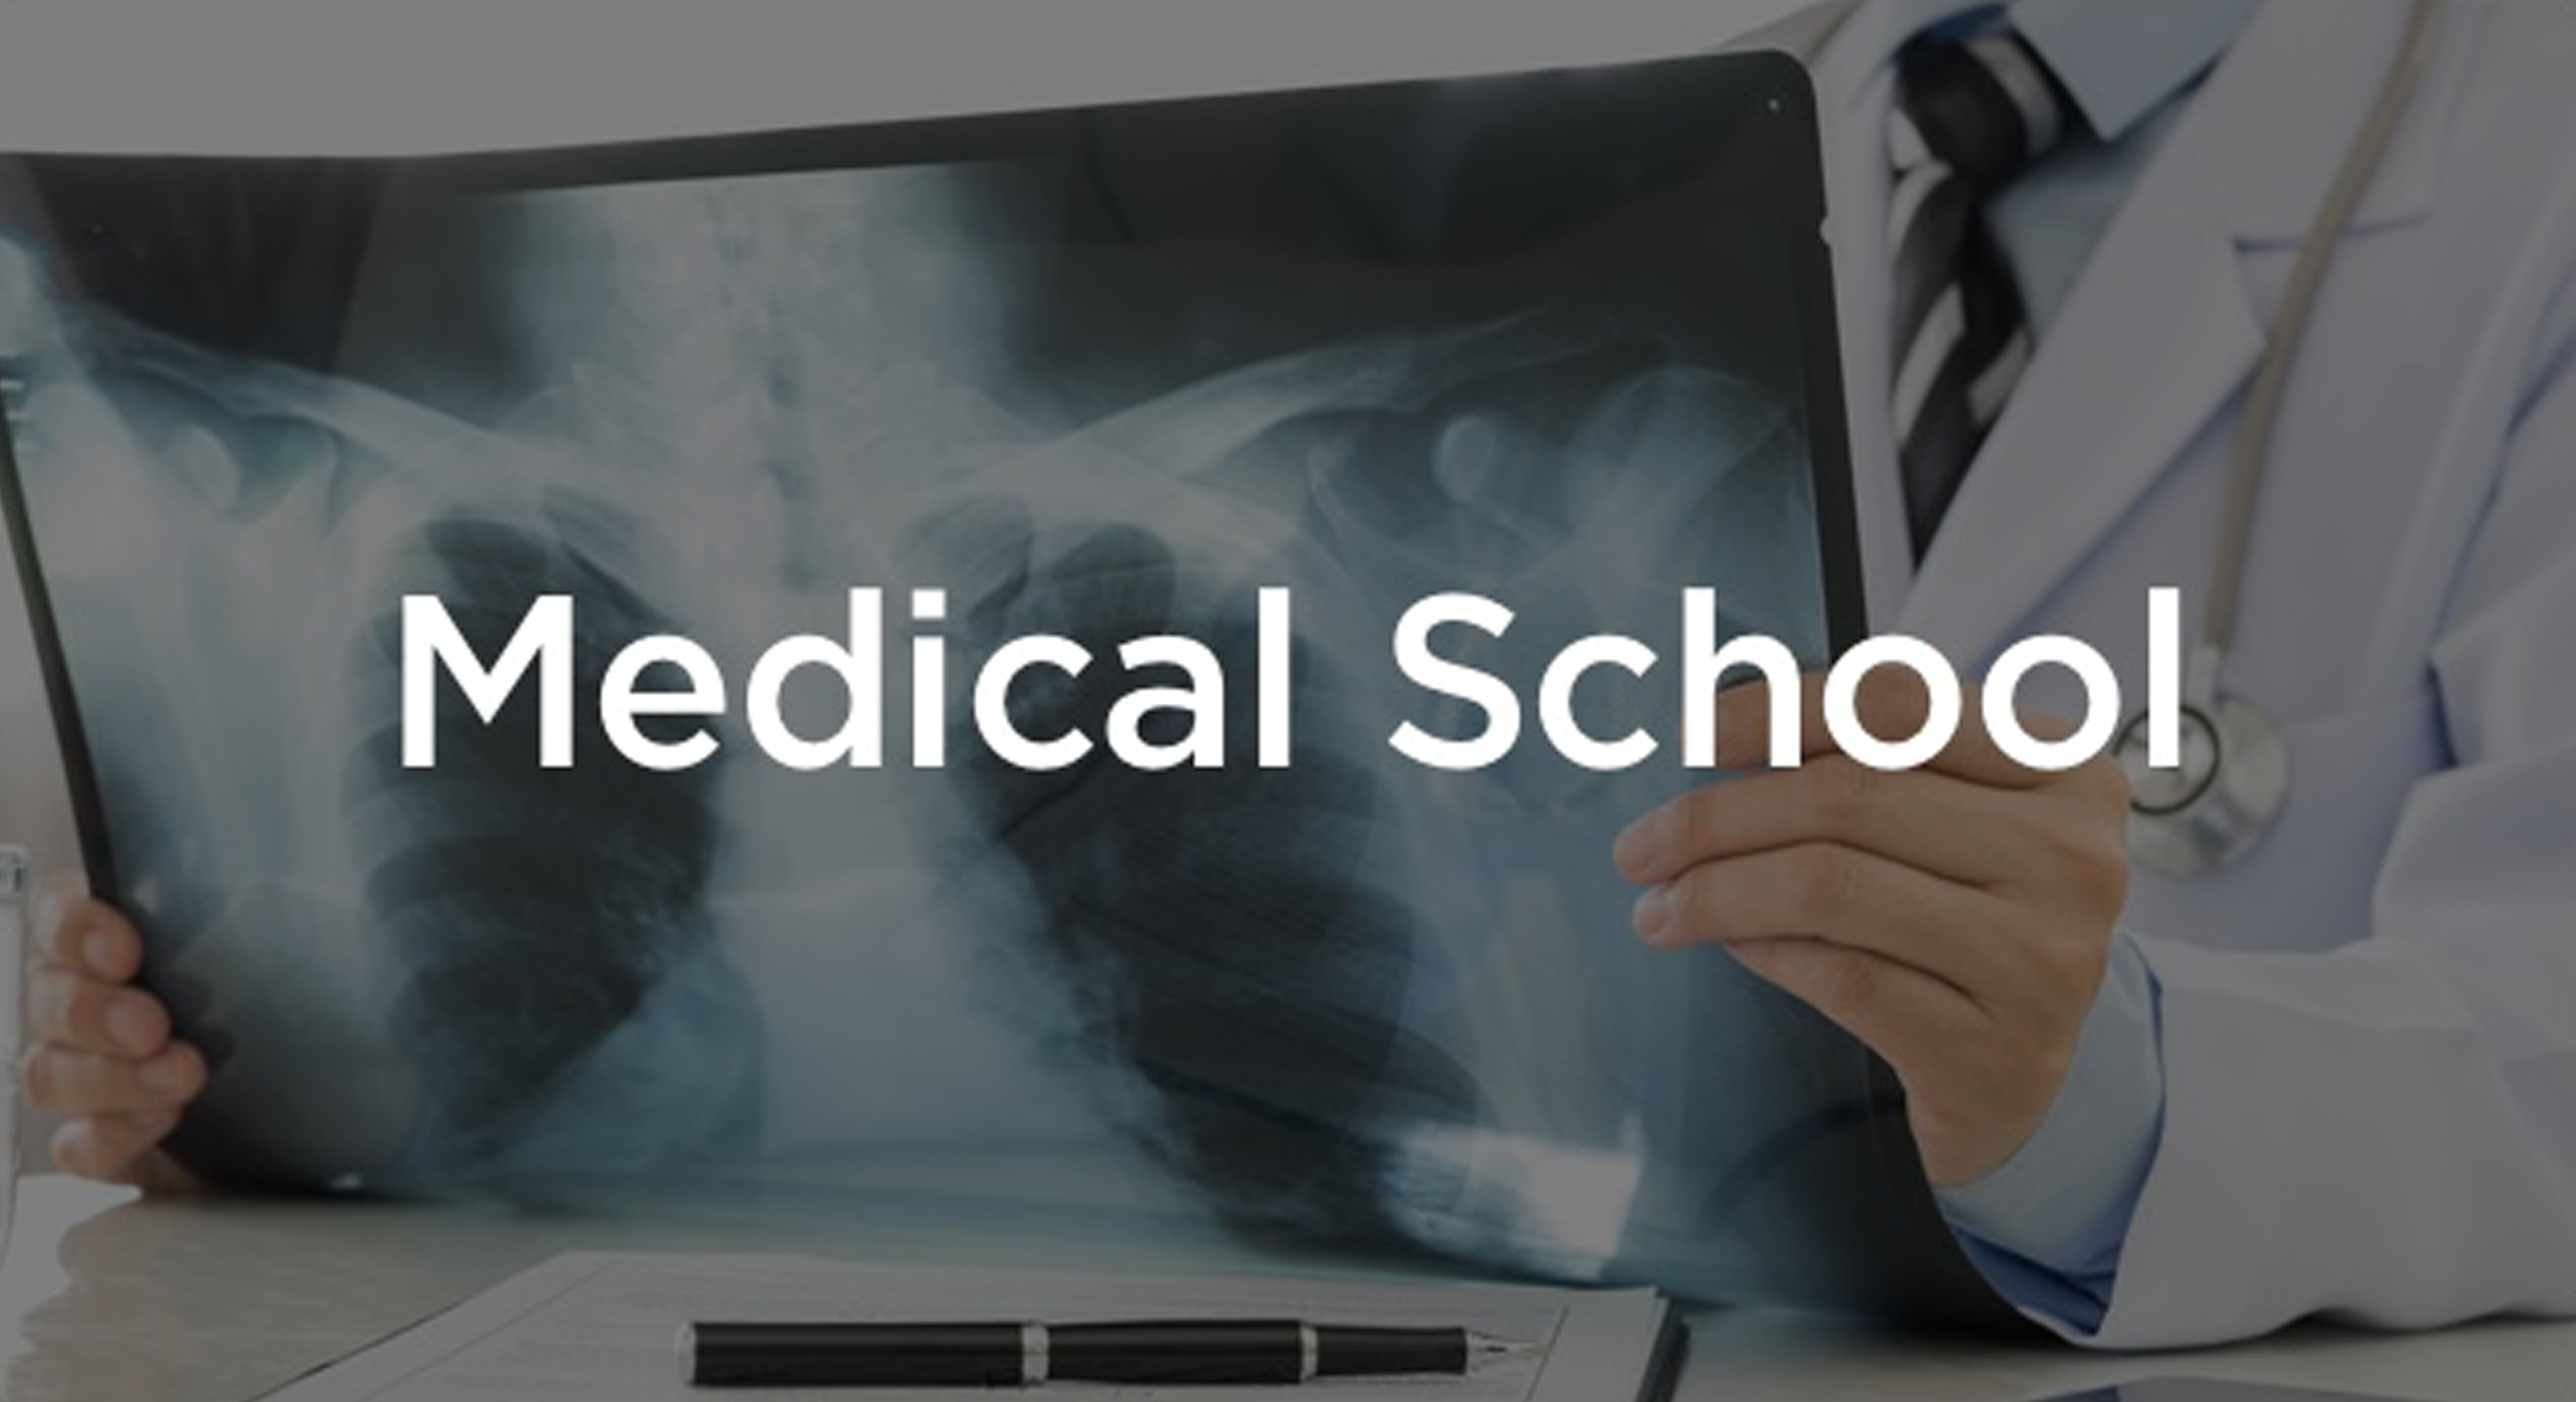 Medical School Integrates Identity Management, Improves Productivity and Security